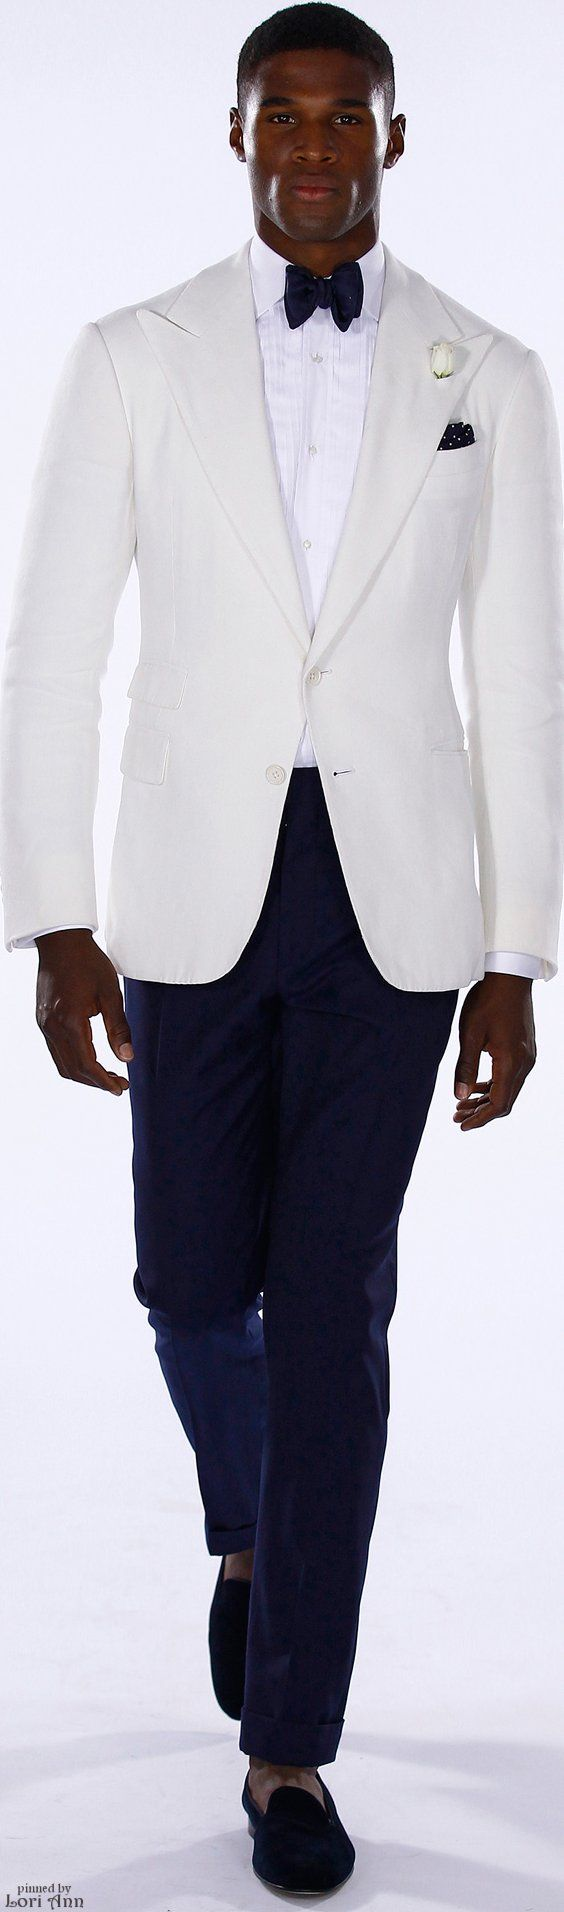 Ralph Lauren Spring 2016. white tuxedo jacket with blue bowtie and blue pants.